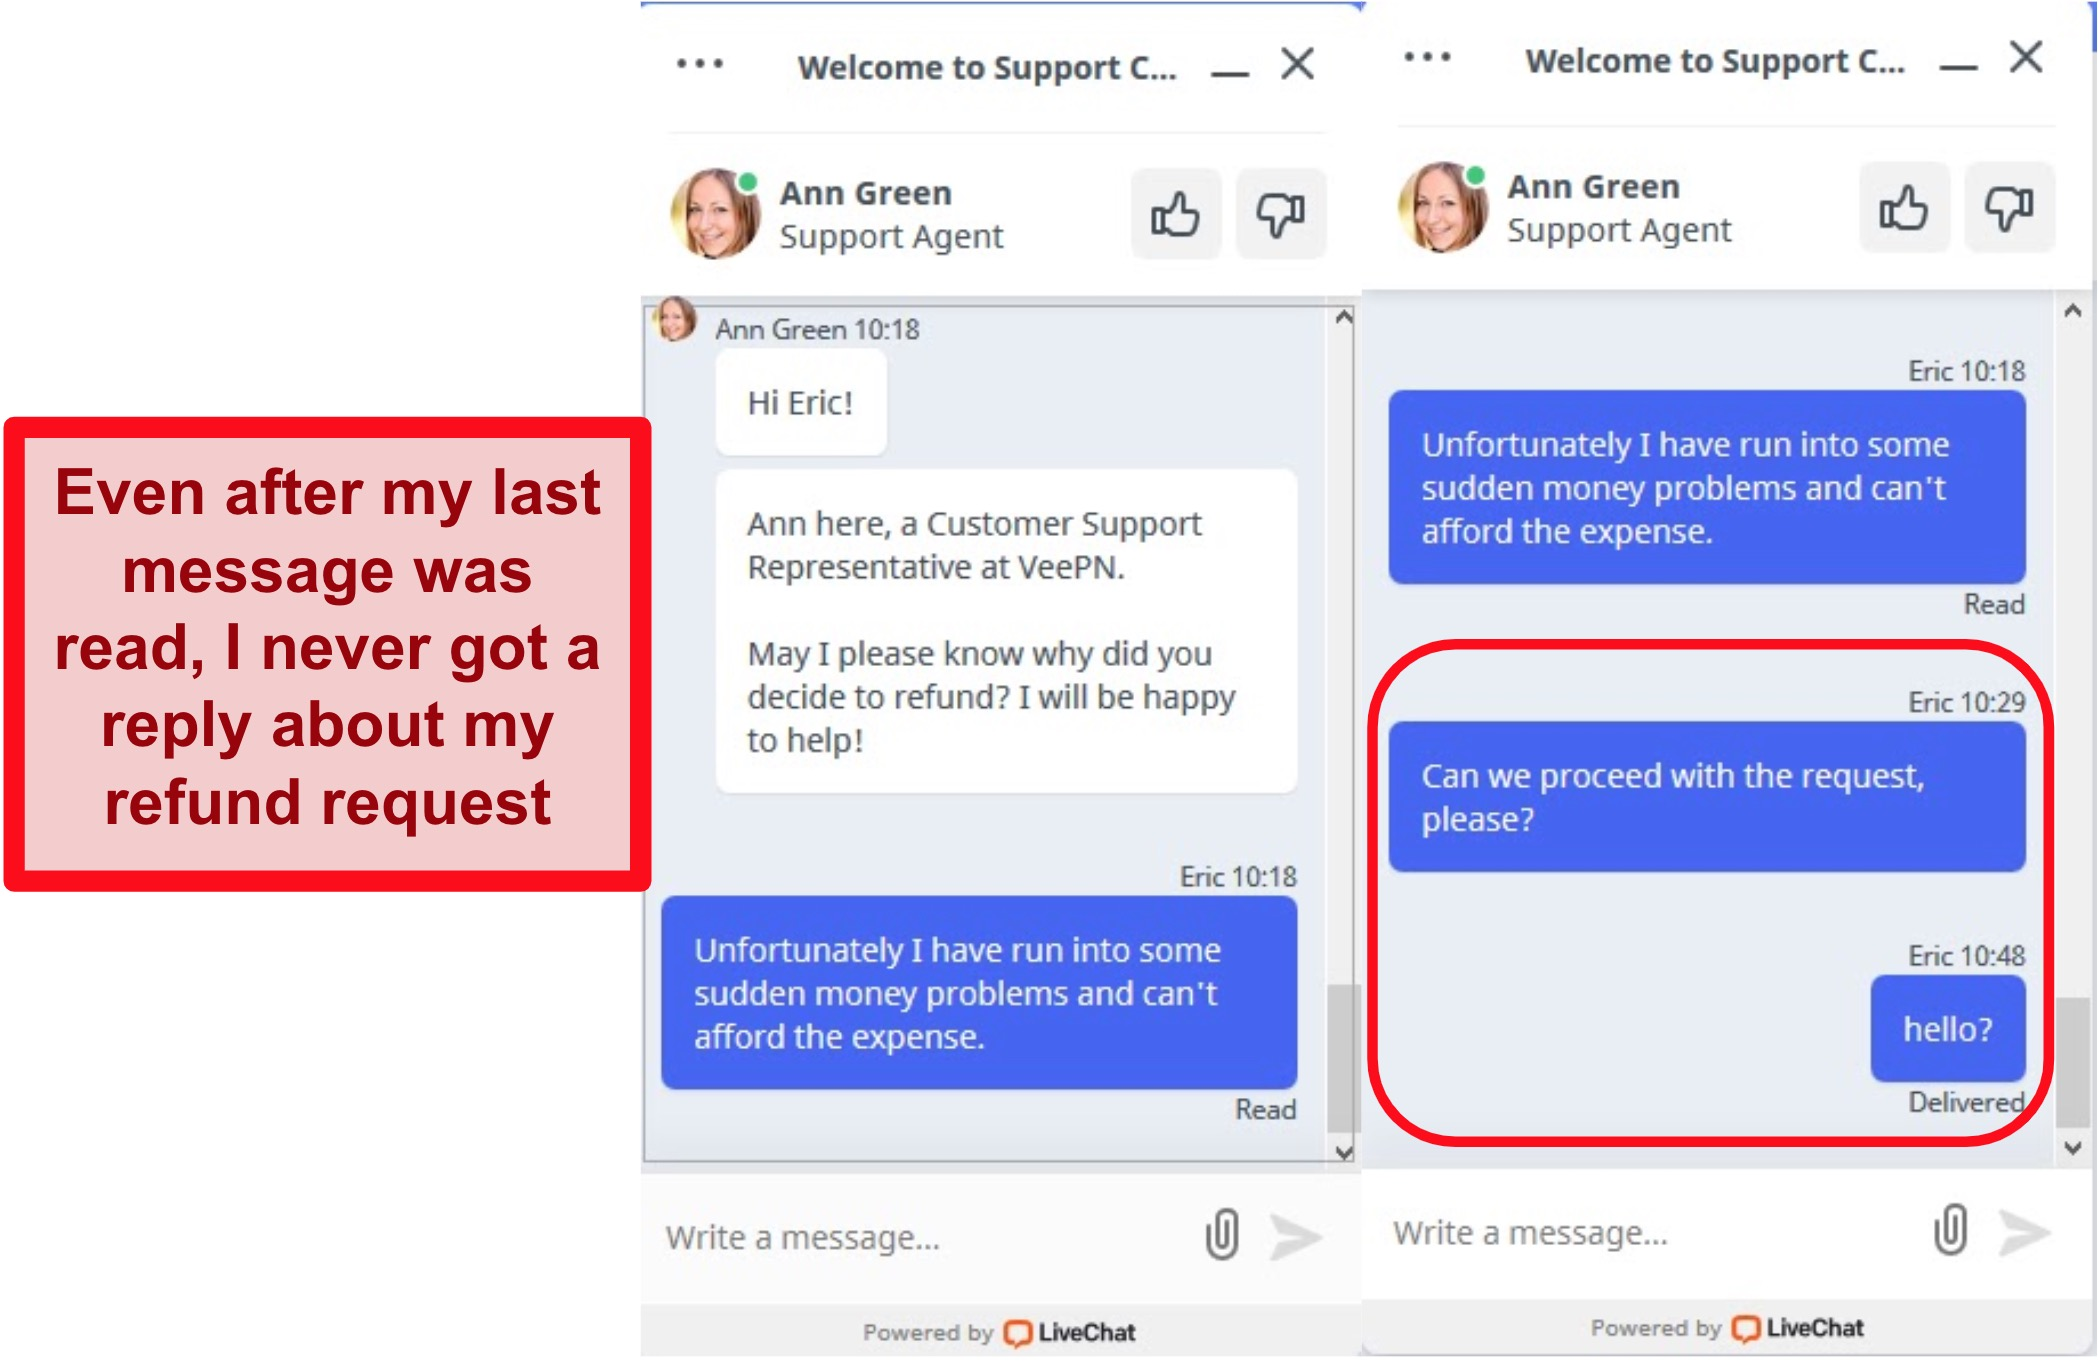 Screenshots of live support chat on VeePN's website showing an unanswered refund request